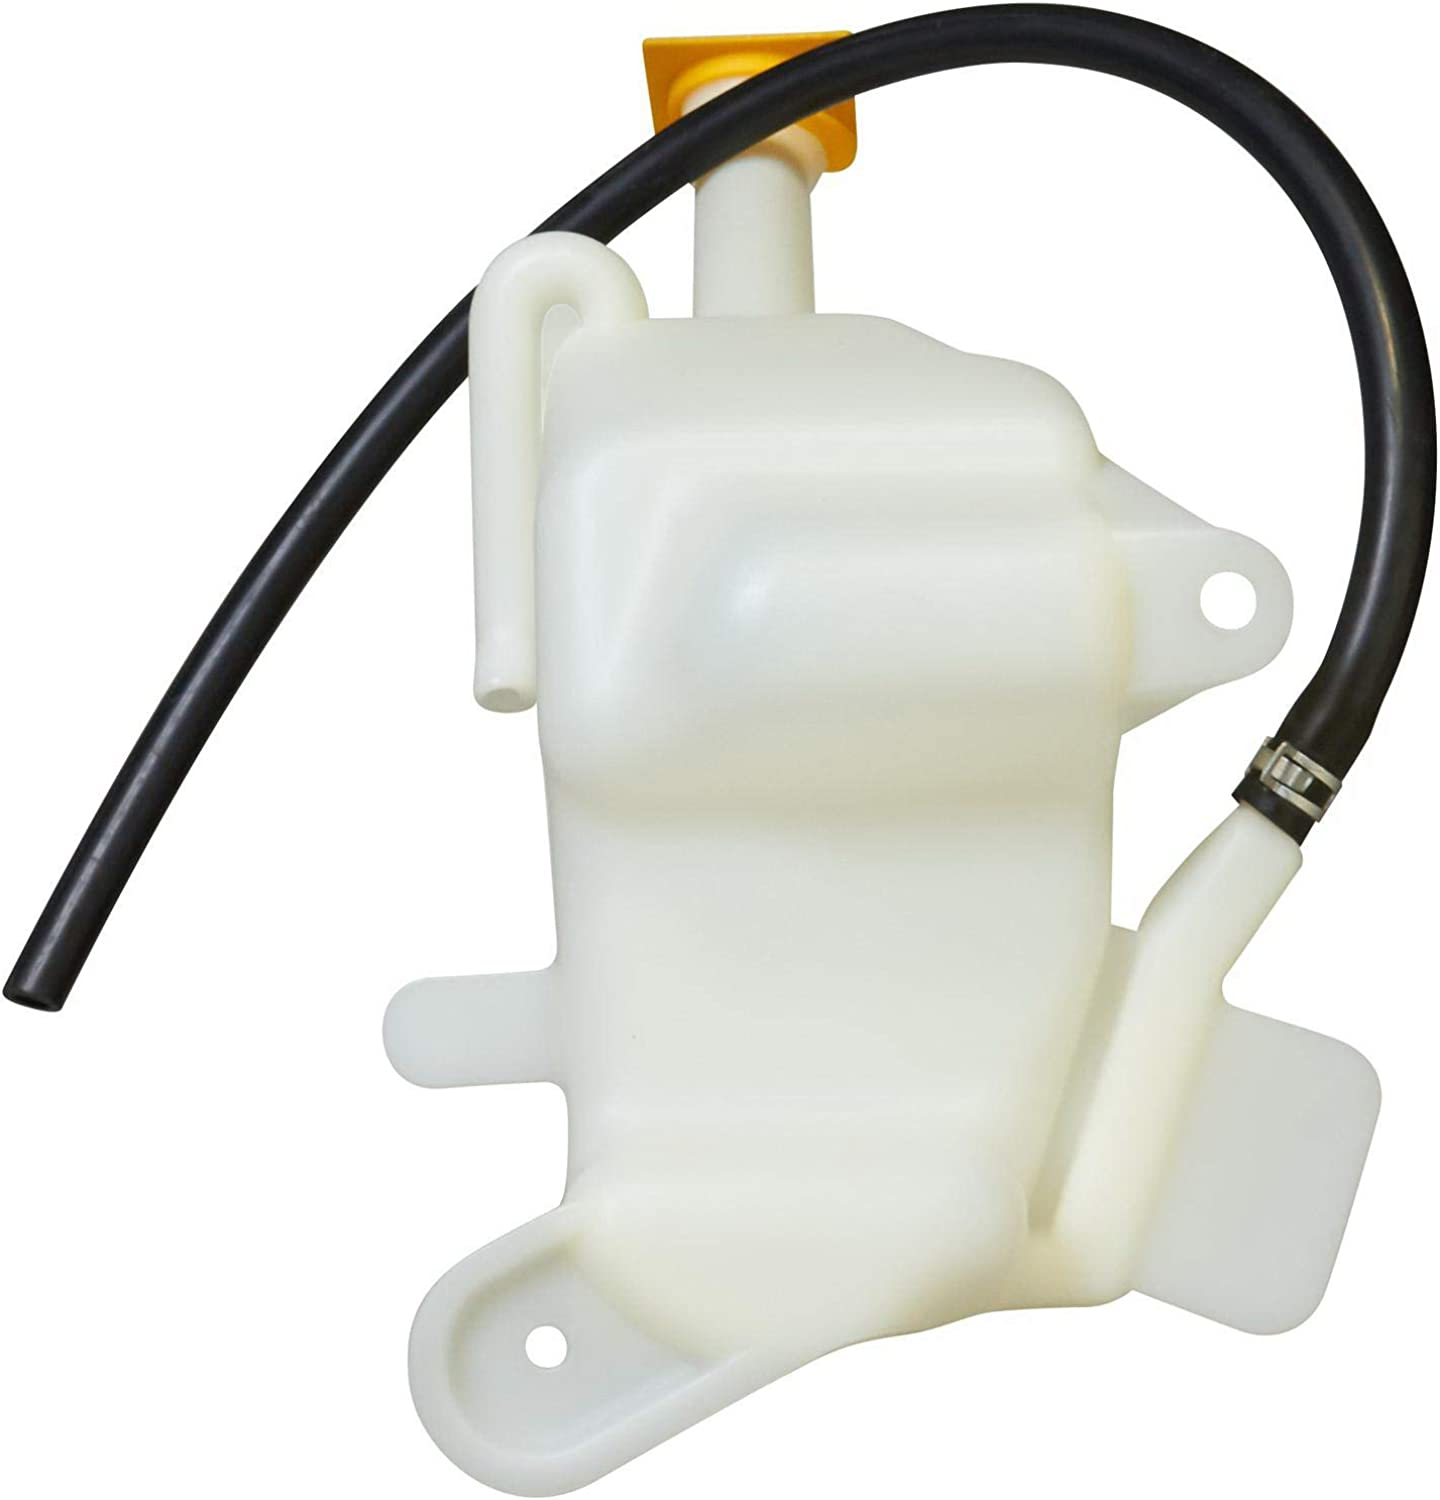 00 01 02 03 04 05 2000 2001 2002 2003 2004 2005 Engine Coolant Recovery 2.0L Compatible with 00-05 NEON